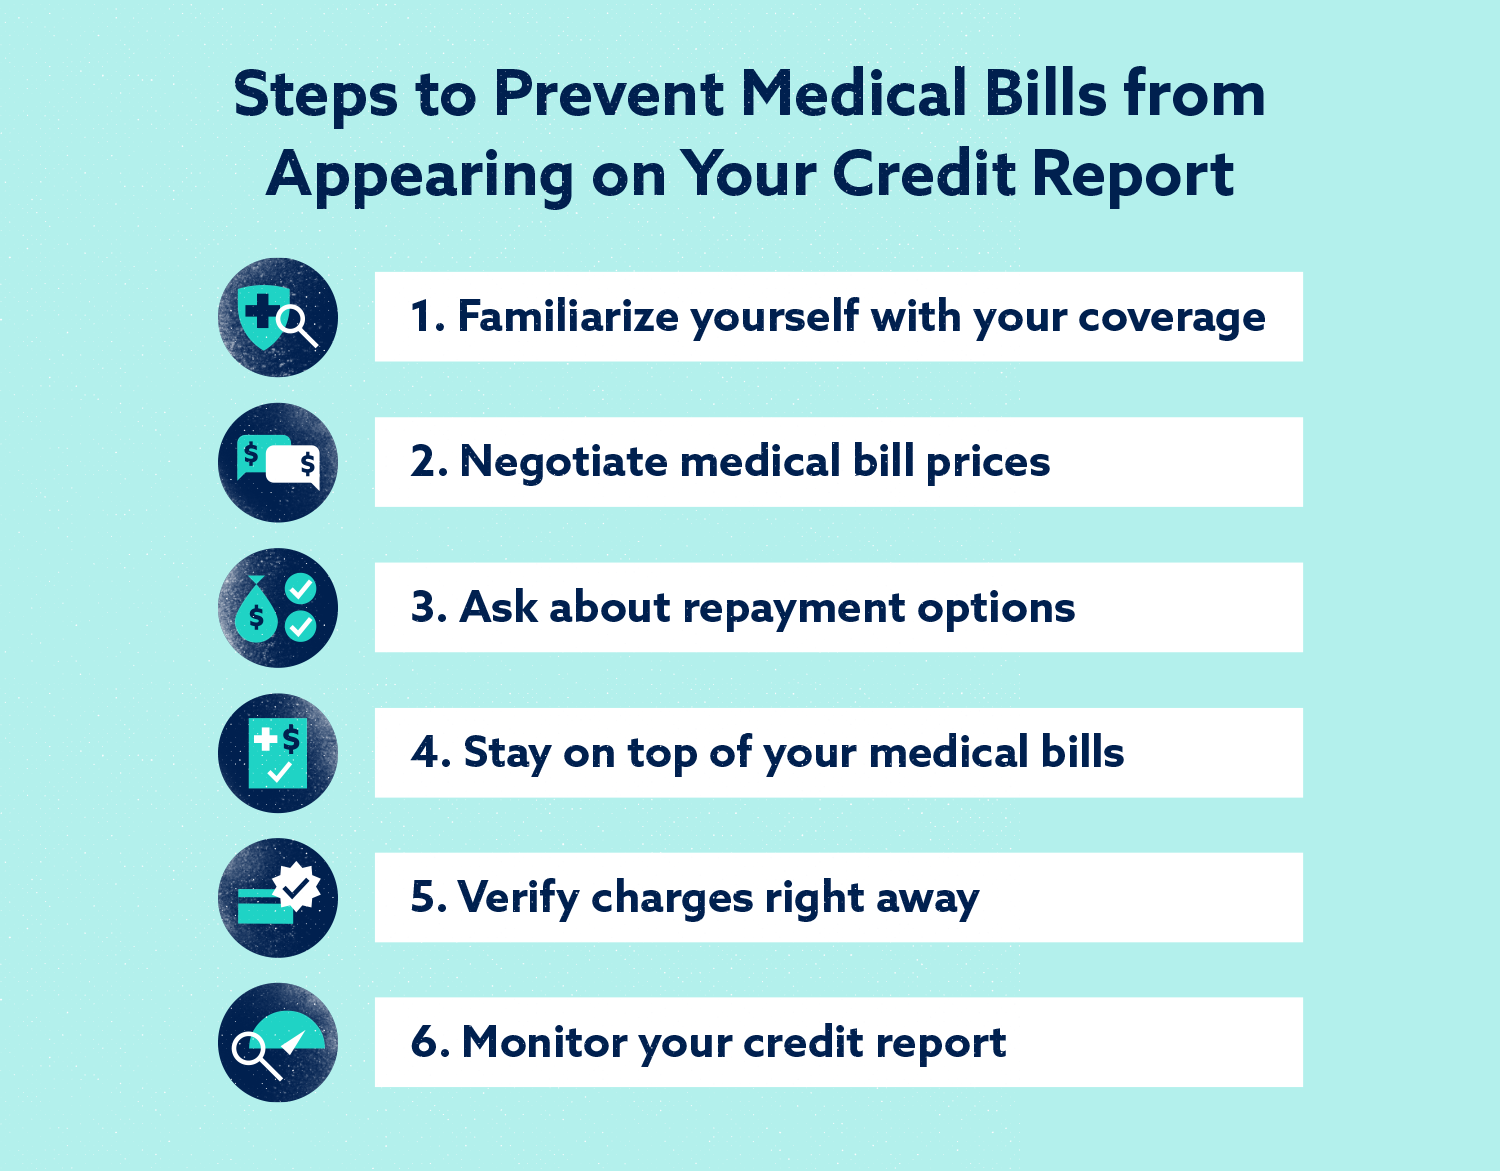 Graphic: Steps to Prevent Medical Bills from Appearing on Your Credit Report